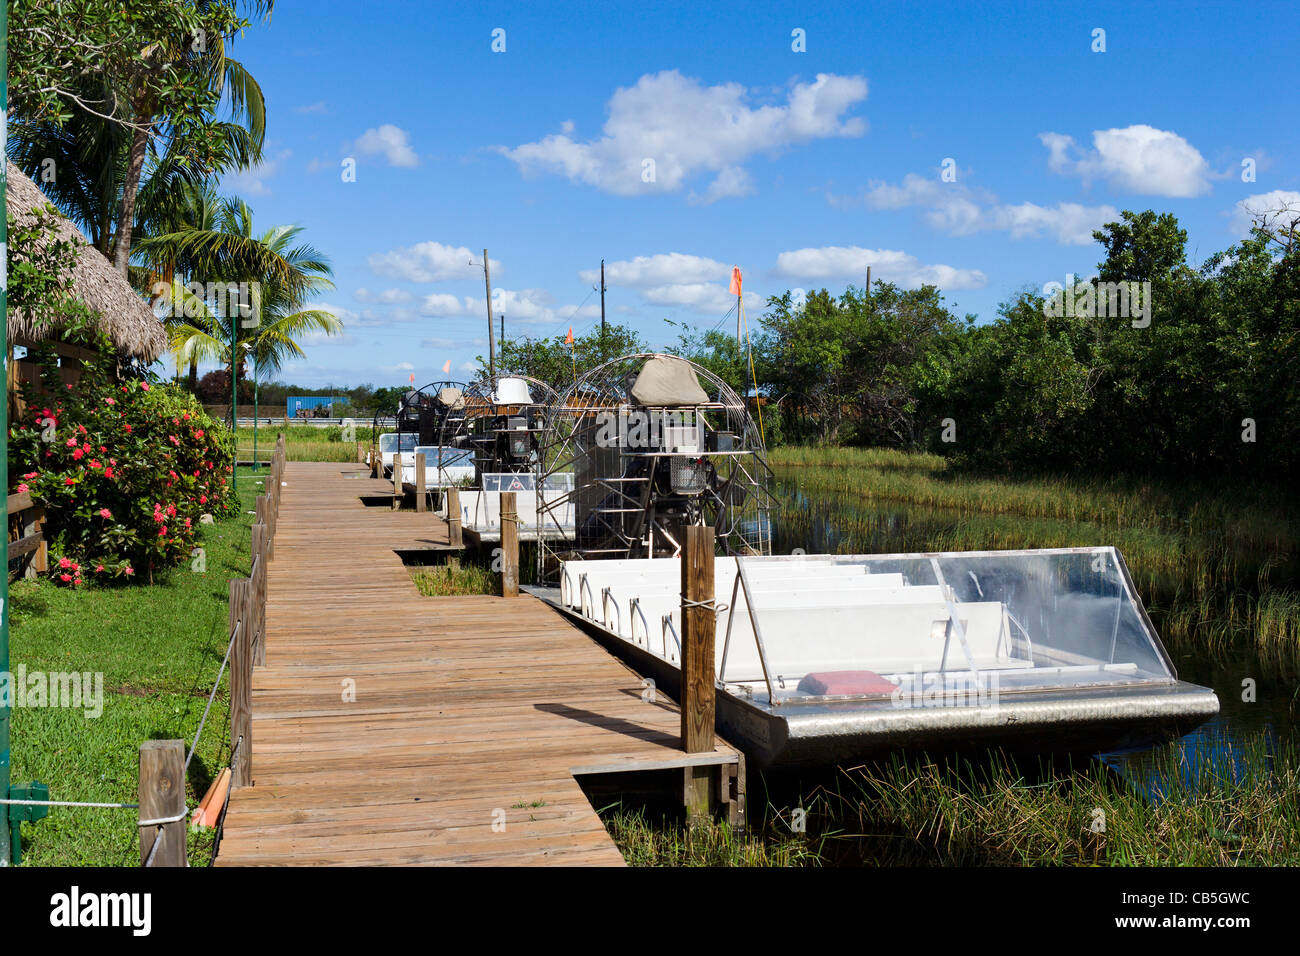 Airboats alongside the dock at Gator Park Airboat Tours on Highway 41 (Tamiami Trail), Florida Everglades, Florida, - Stock Image